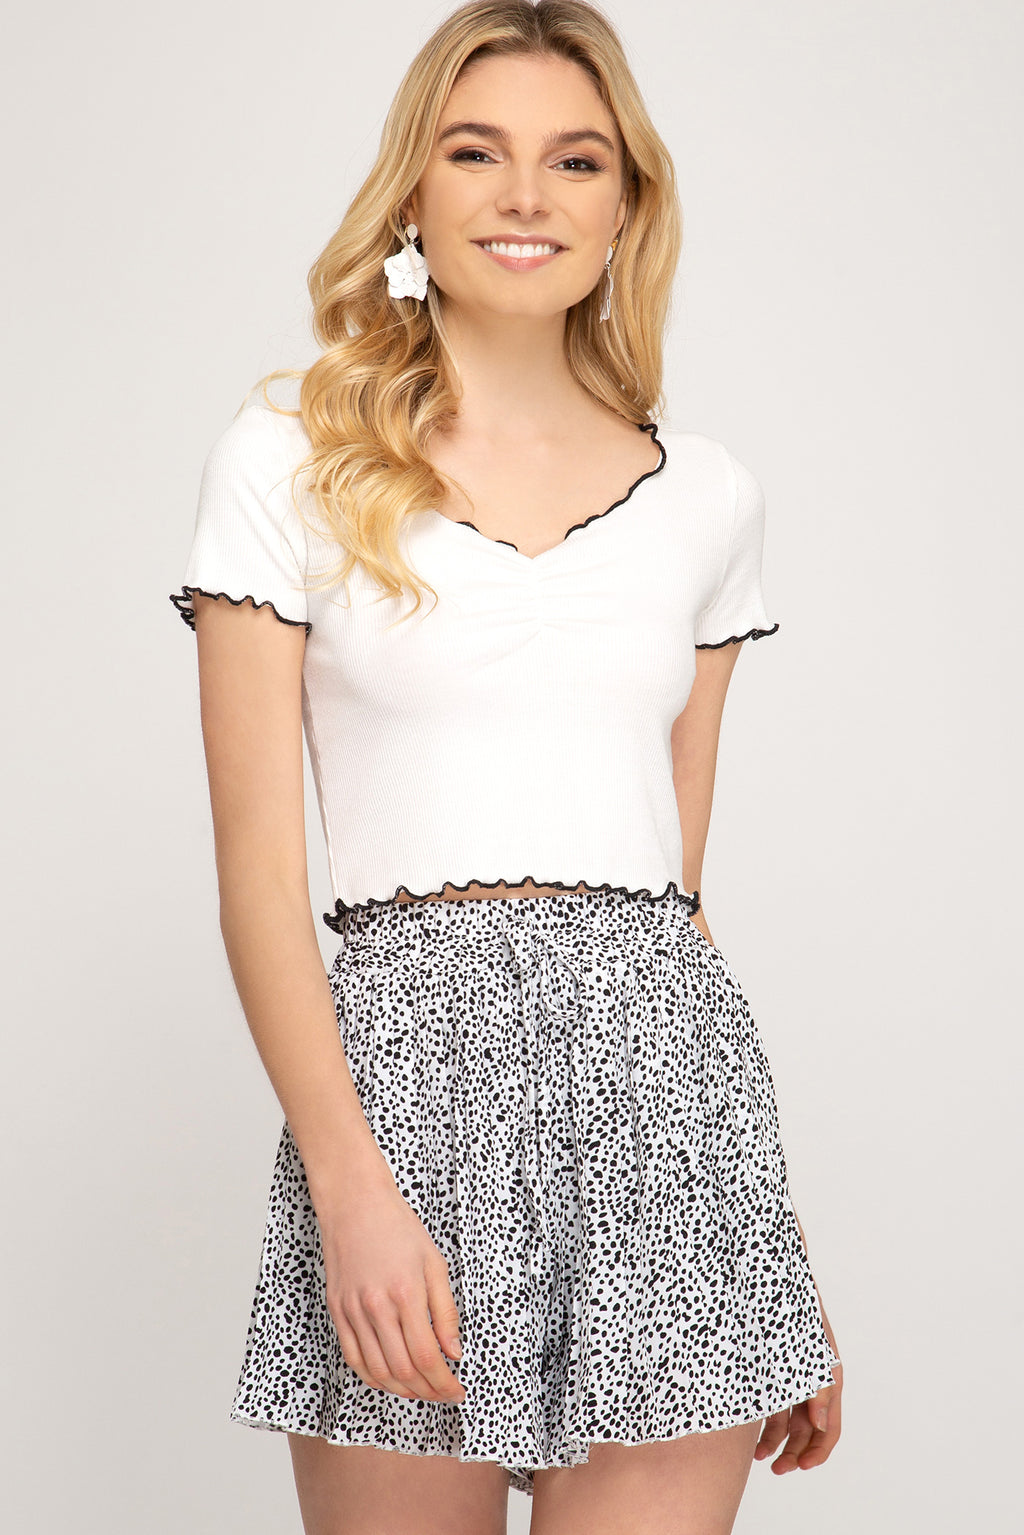 Dalmation Knife Pleat Shorts - Free Souls Boutique